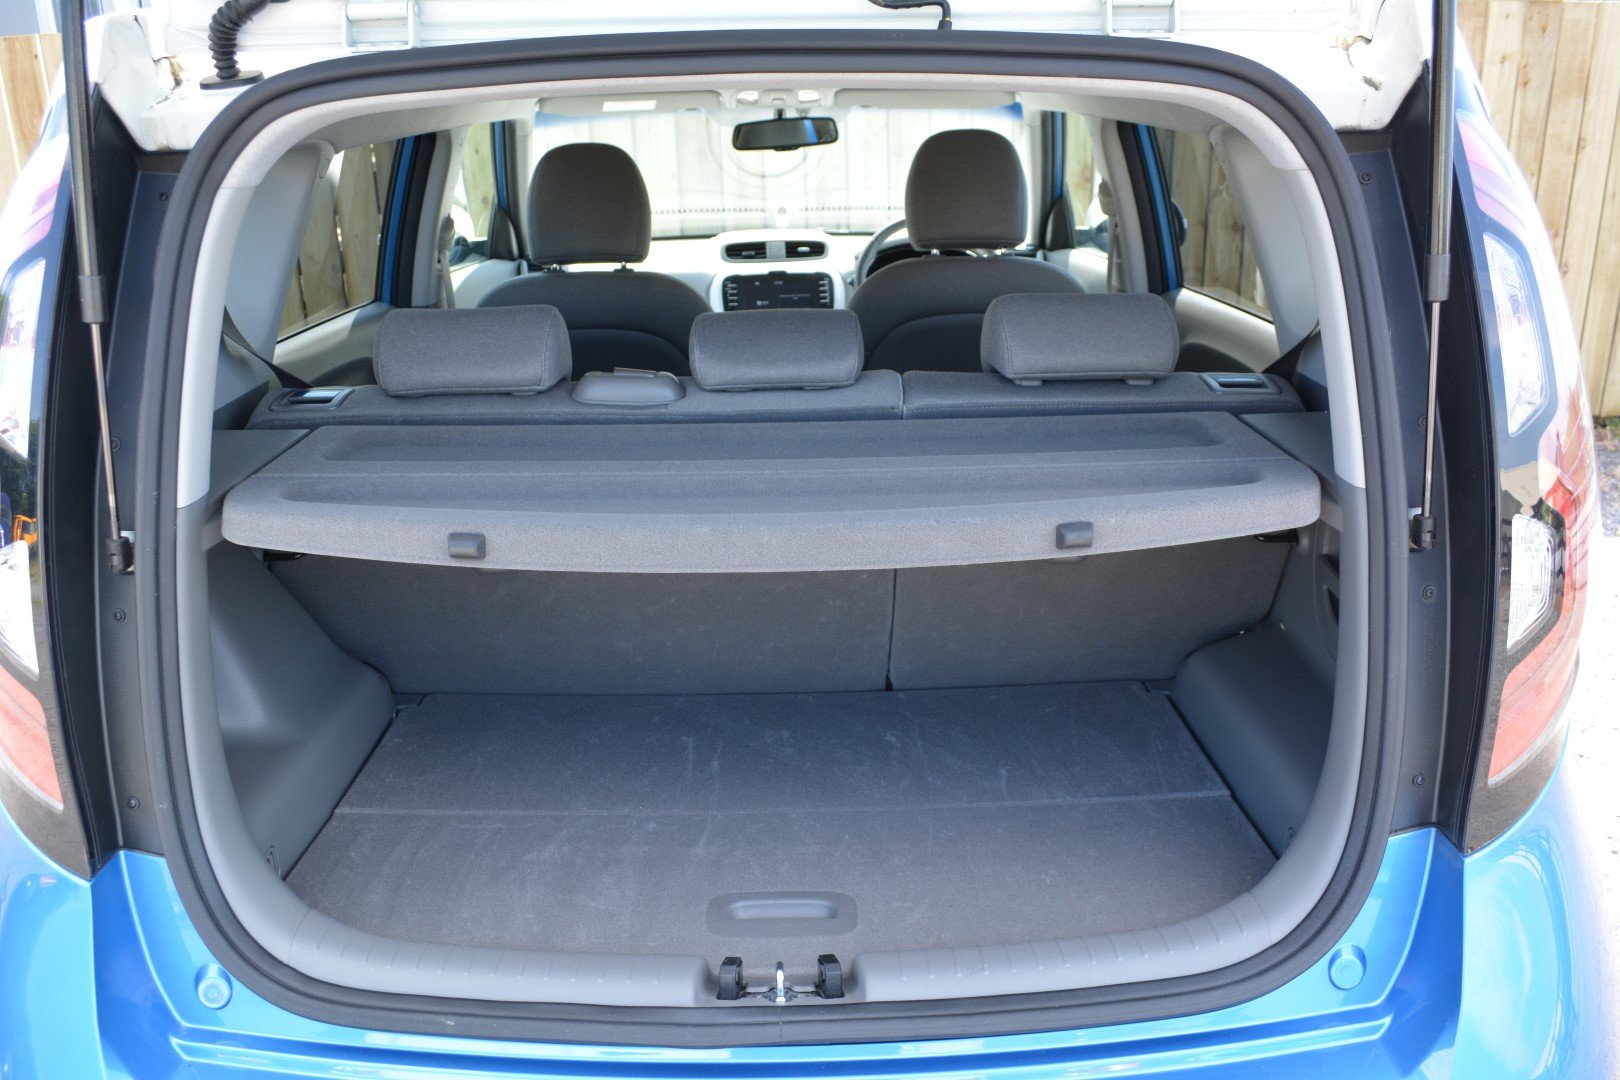 2018 Kia Soul EV Fully Electric - Practical Space - Great Range For Sale (picture 5 of 6)